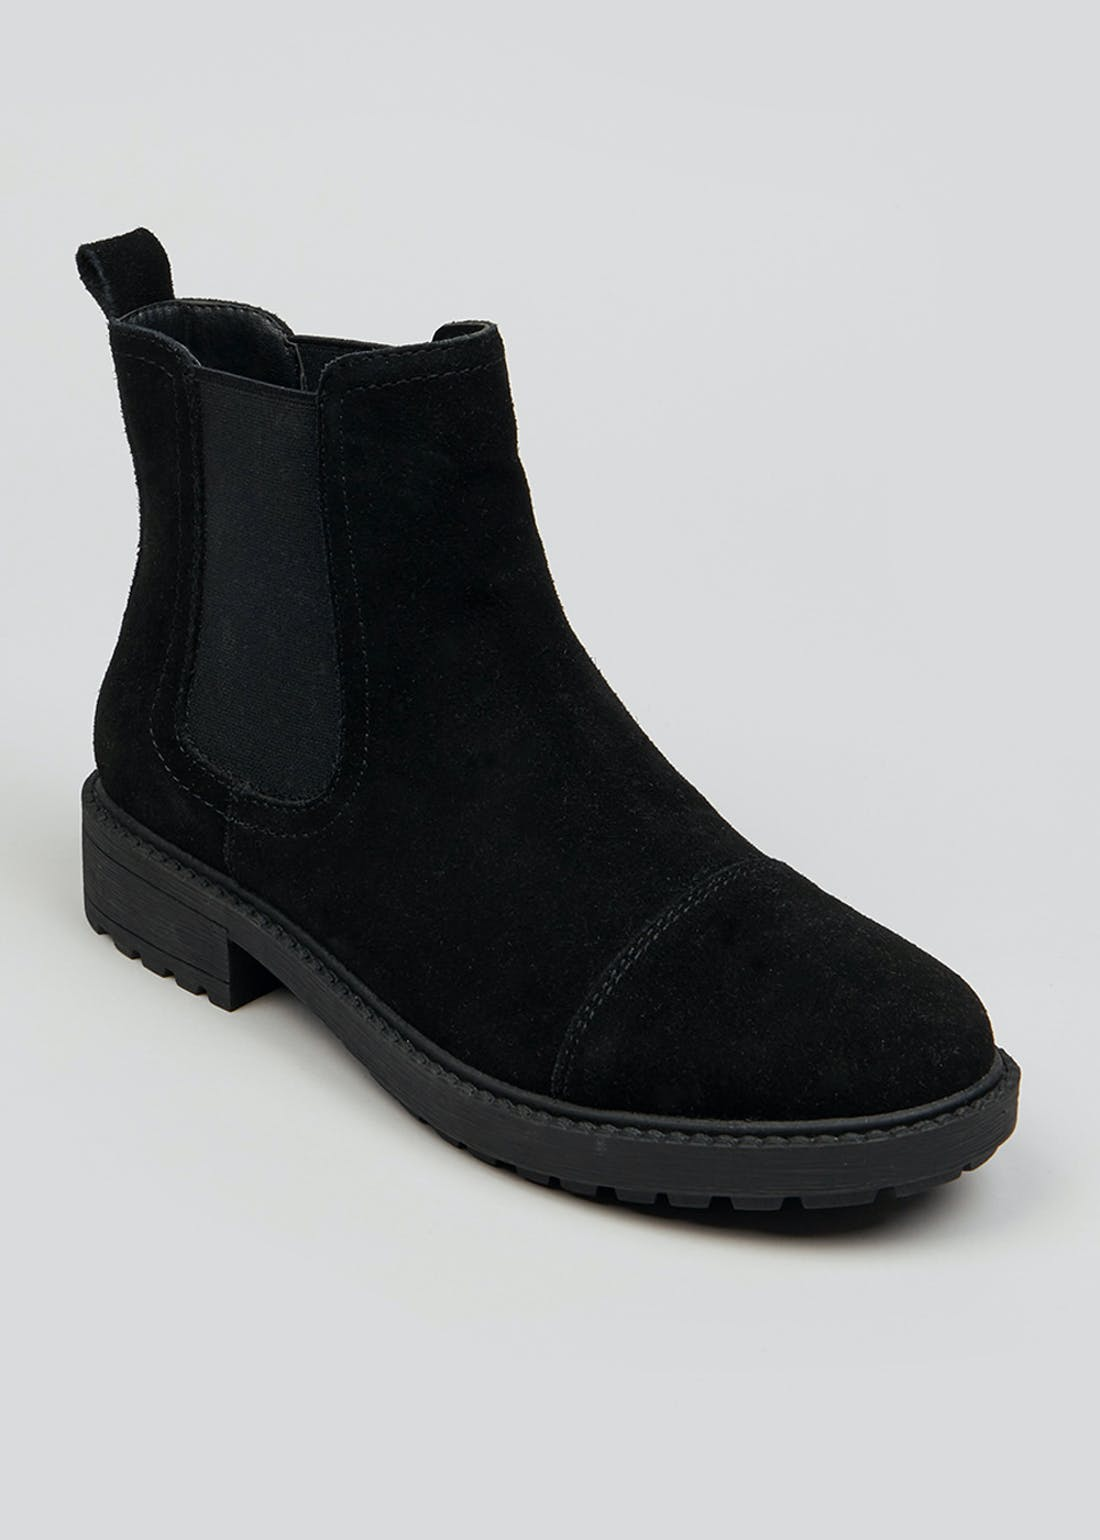 Soleflex Black Cleated Chelsea Boots